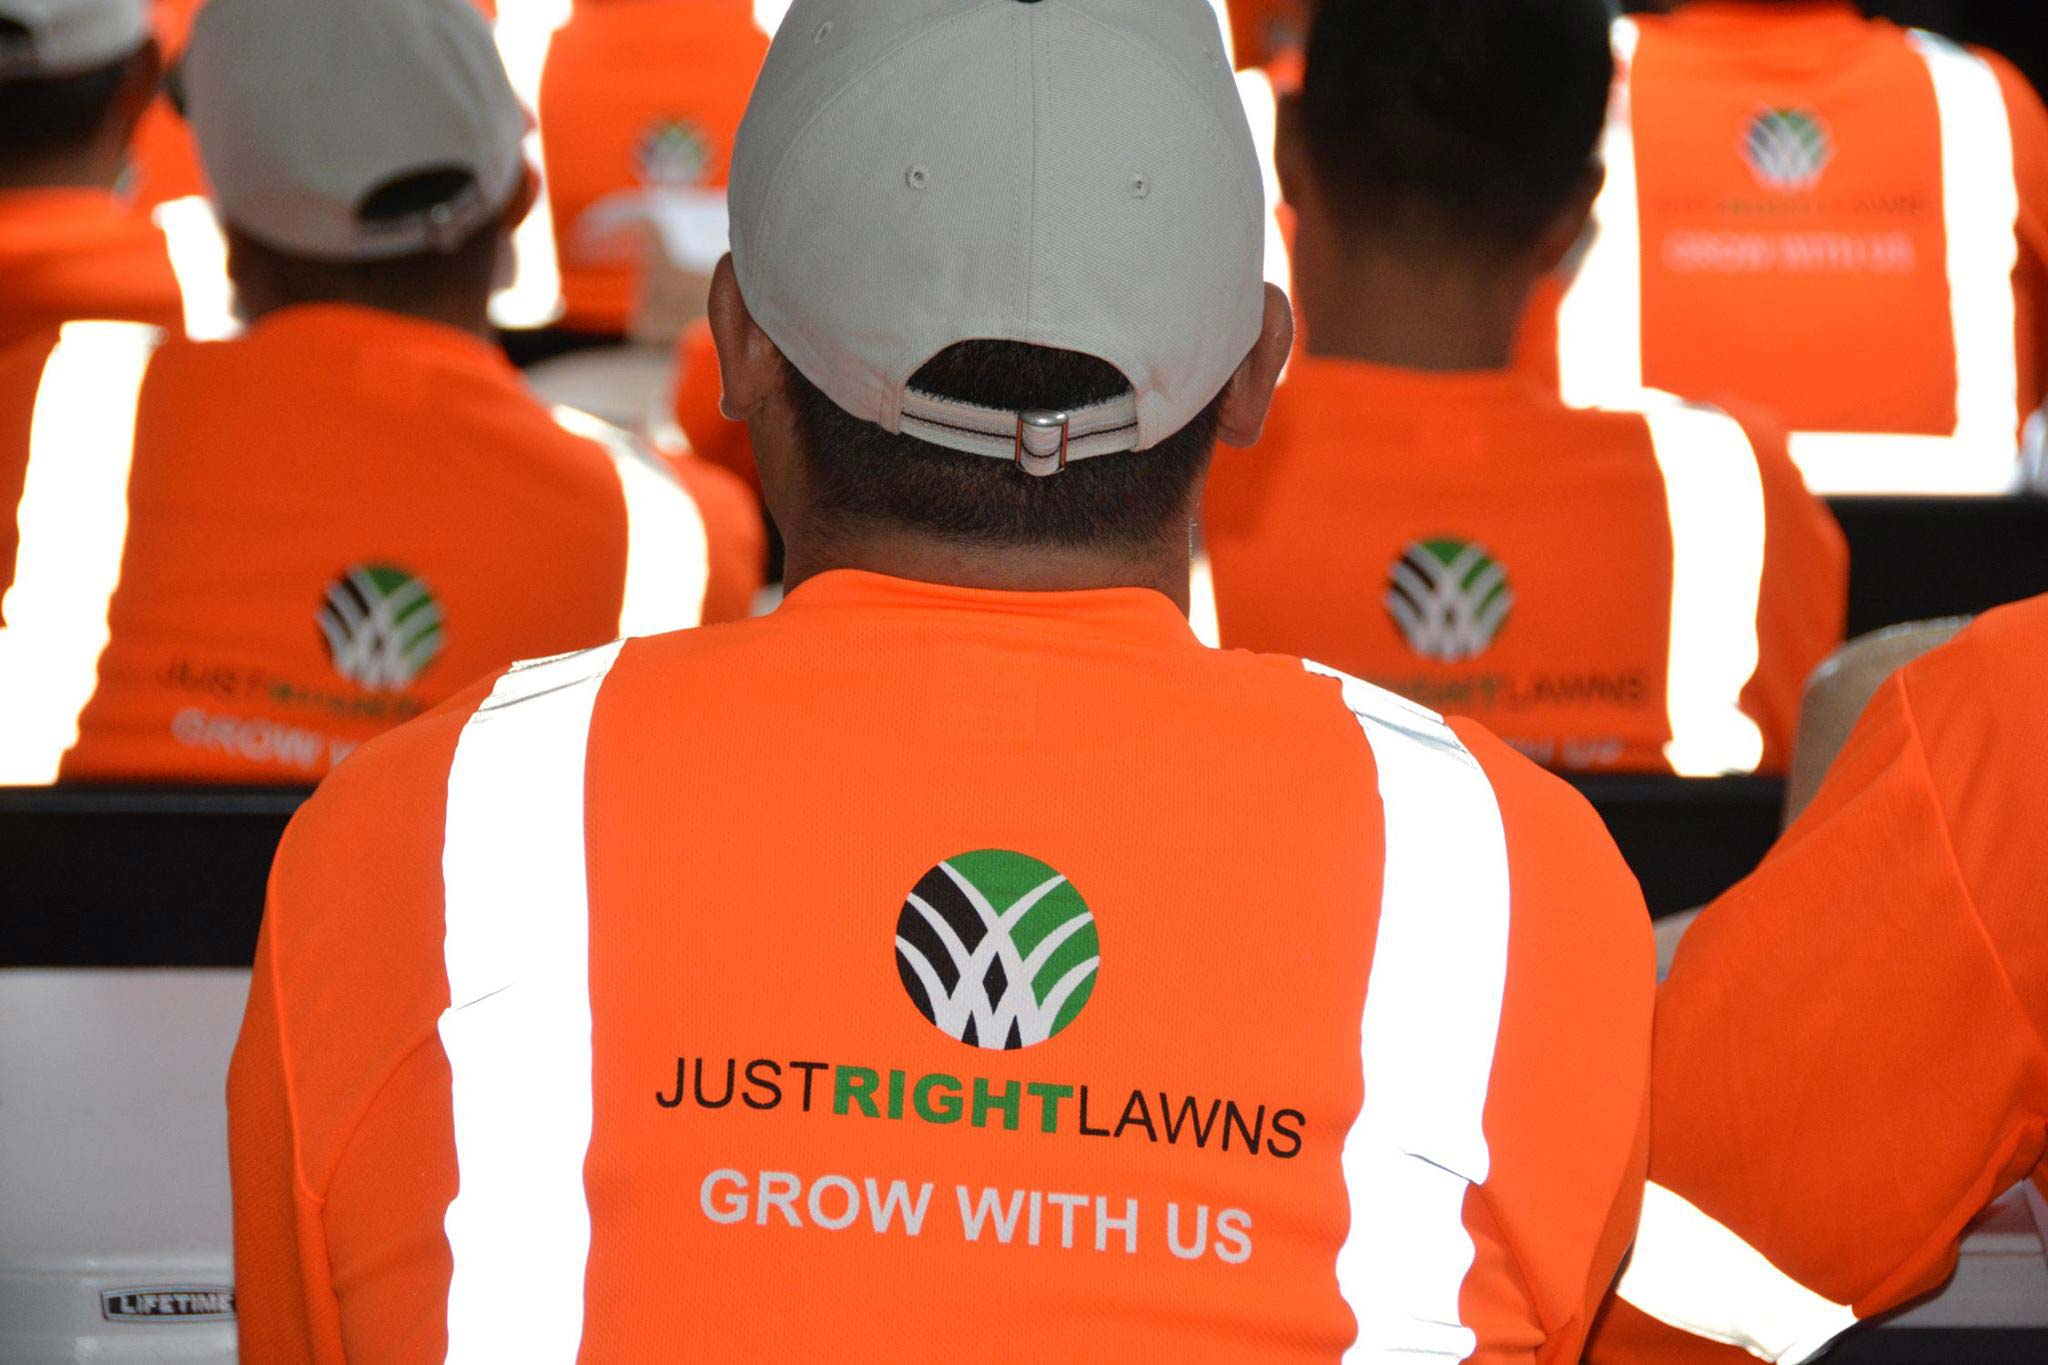 Just Right Lawns team uniform